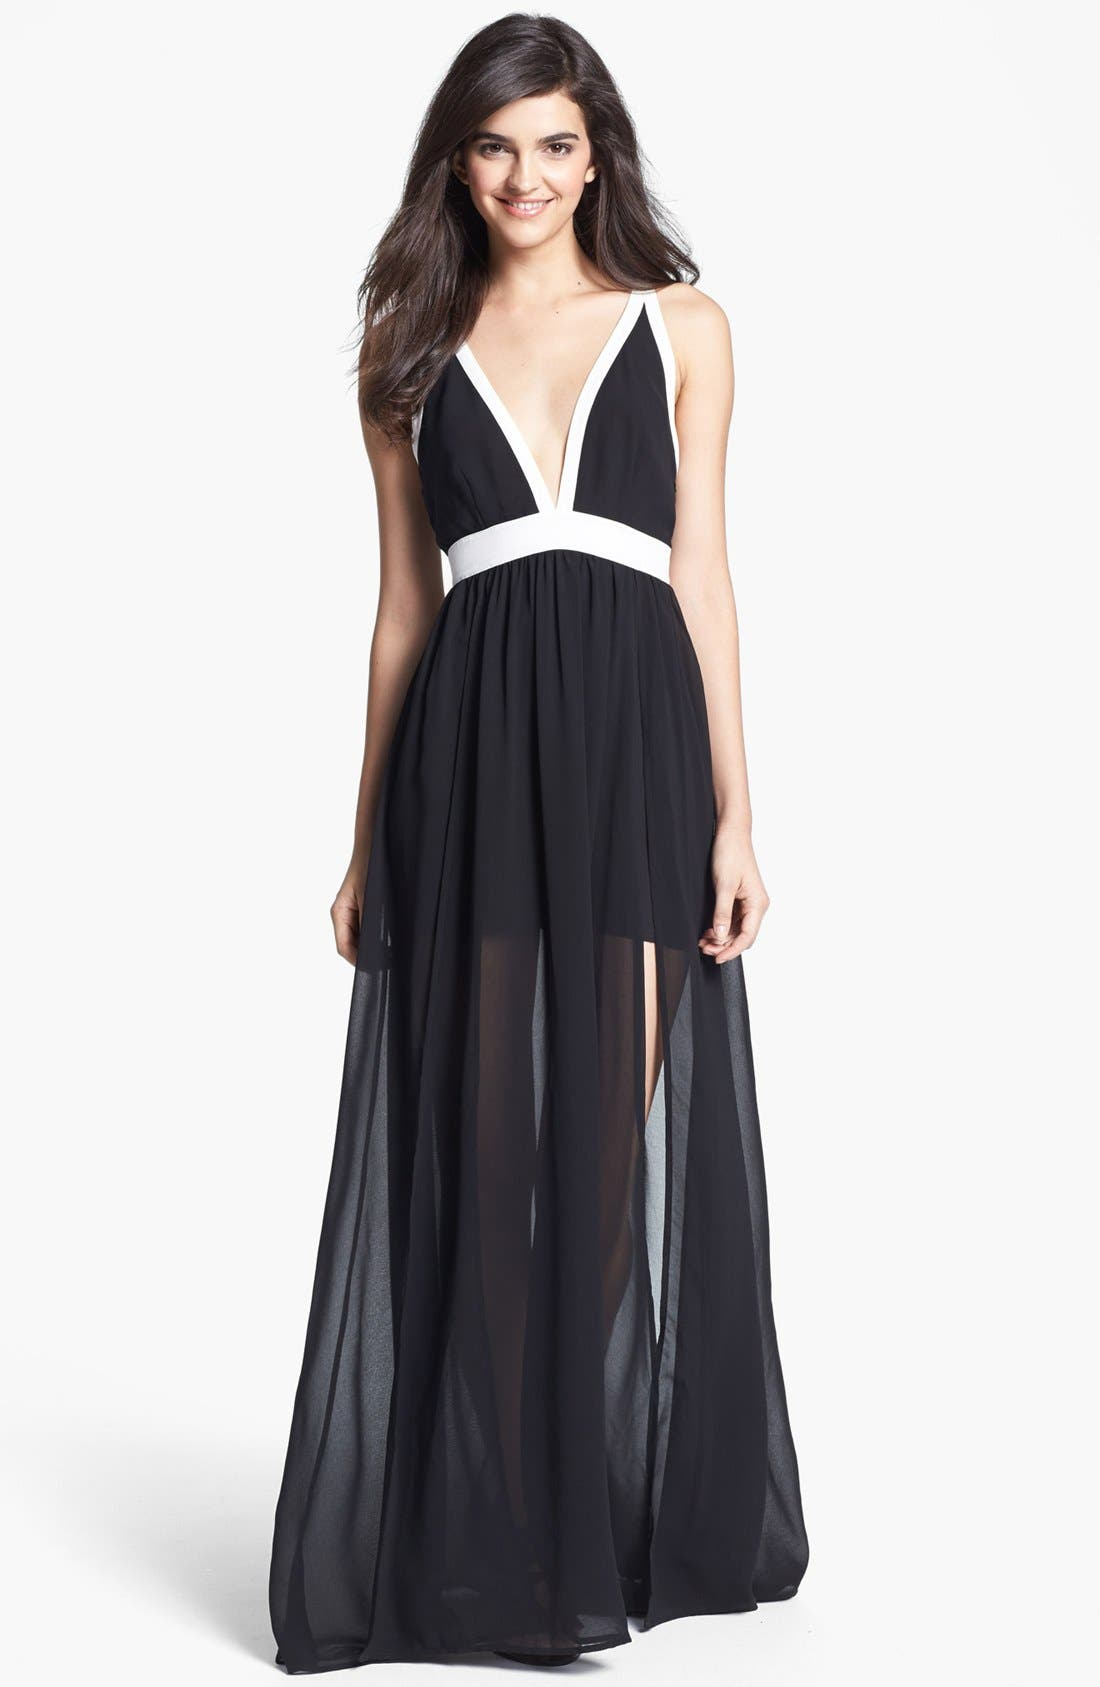 Main Image - Keepsake the Label 'Eyes Wide Open' Contrast Trim Maxi Dress